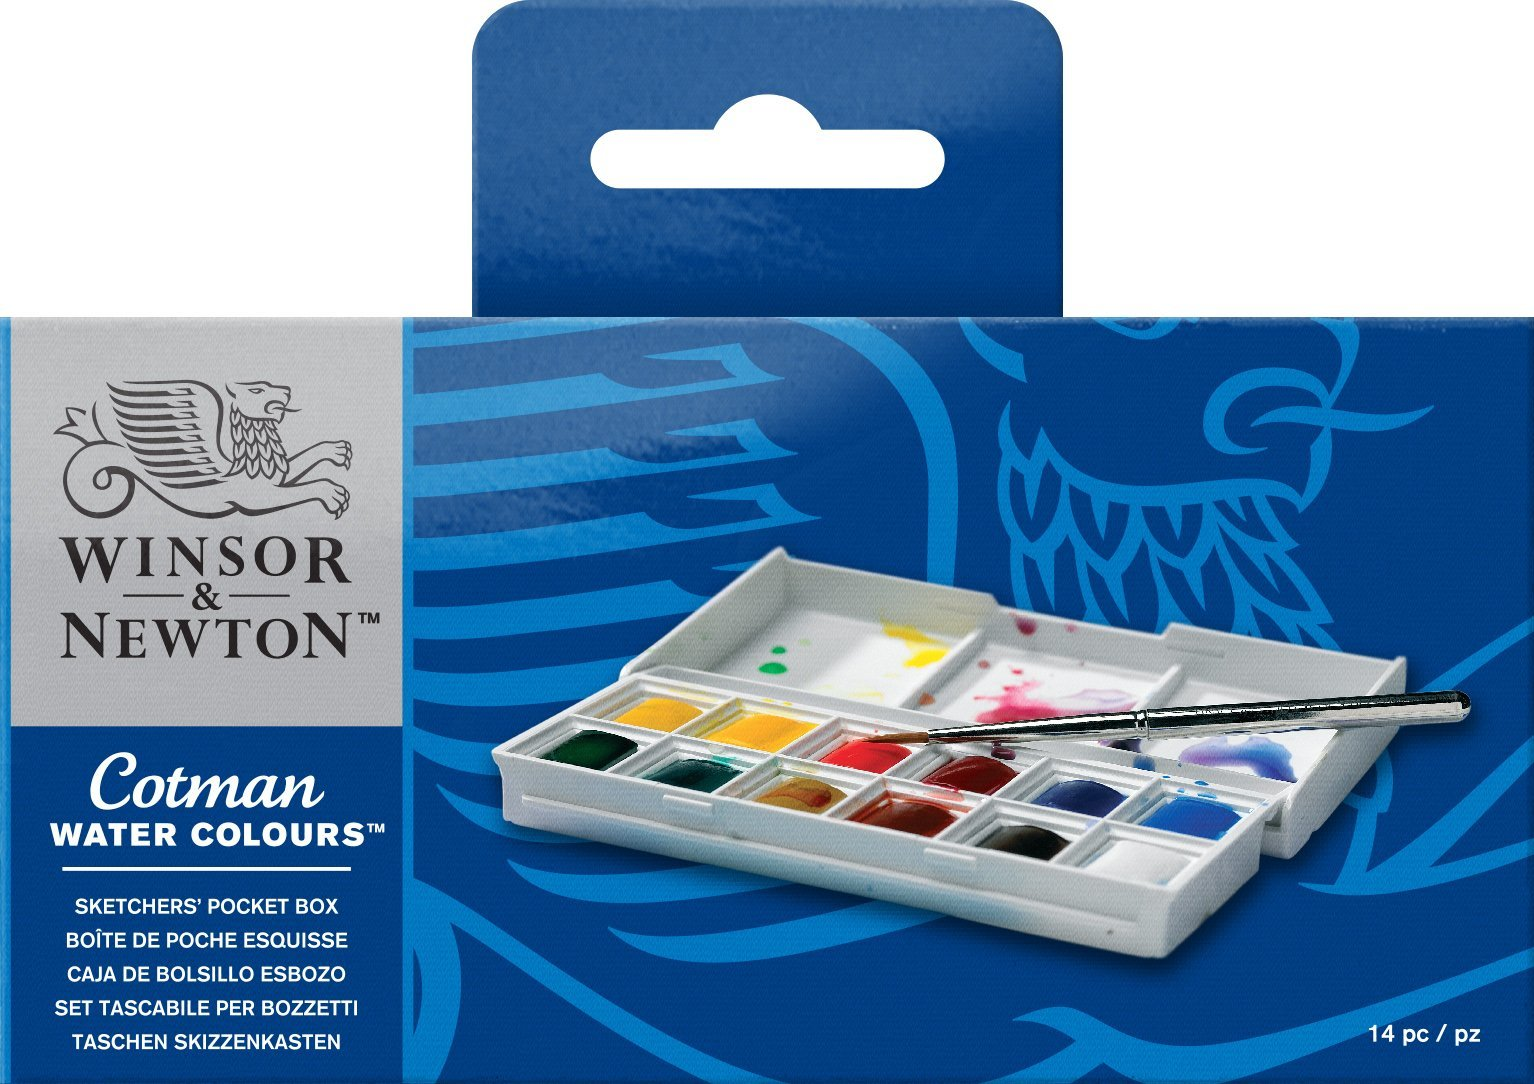 Winsor & Newton Cotman Water Colour Paint Sketchers' Pocket Box, Half Pans, 14-Pieces by Winsor & Newton